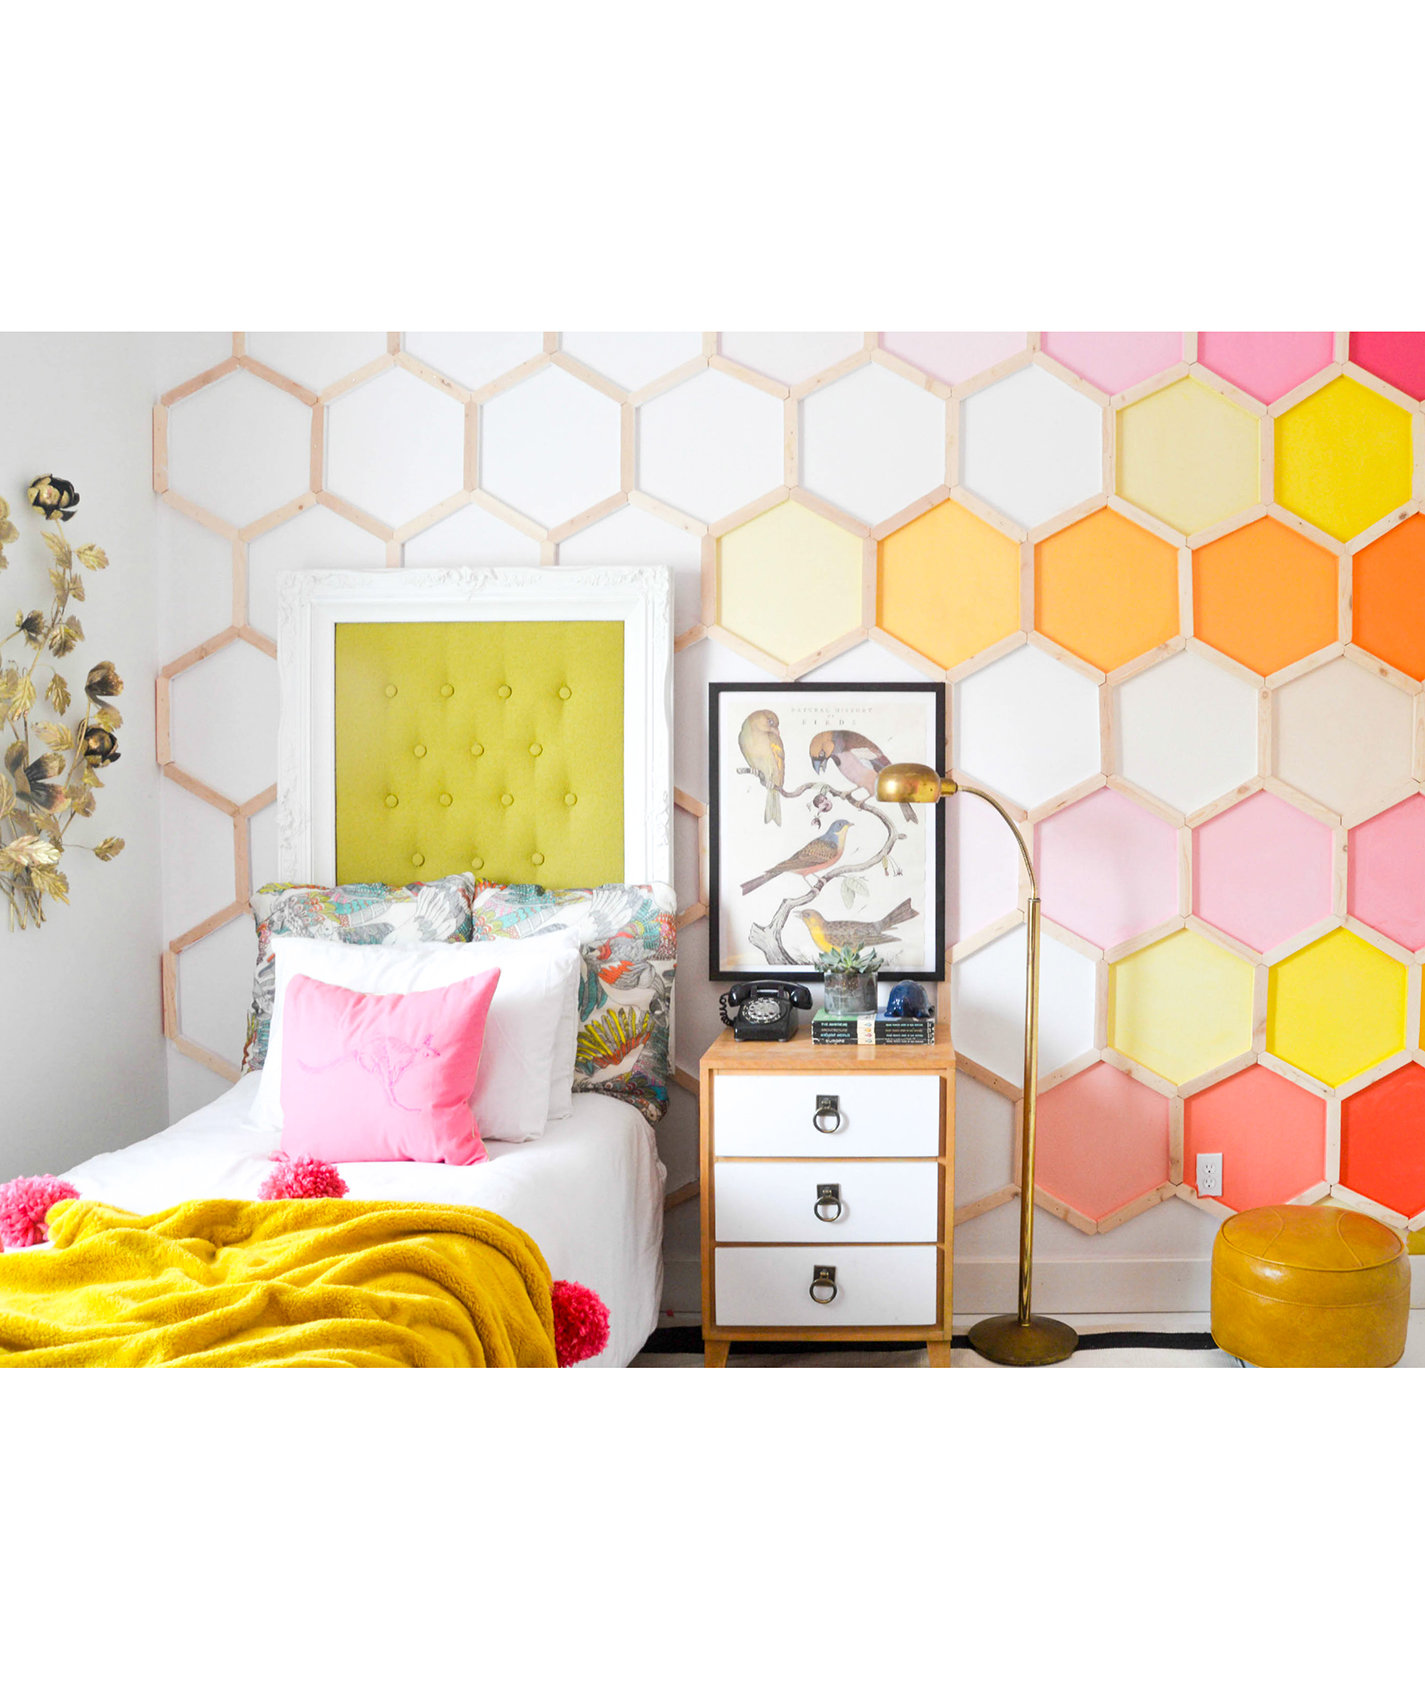 girls-room-hexagon-pattern-wall